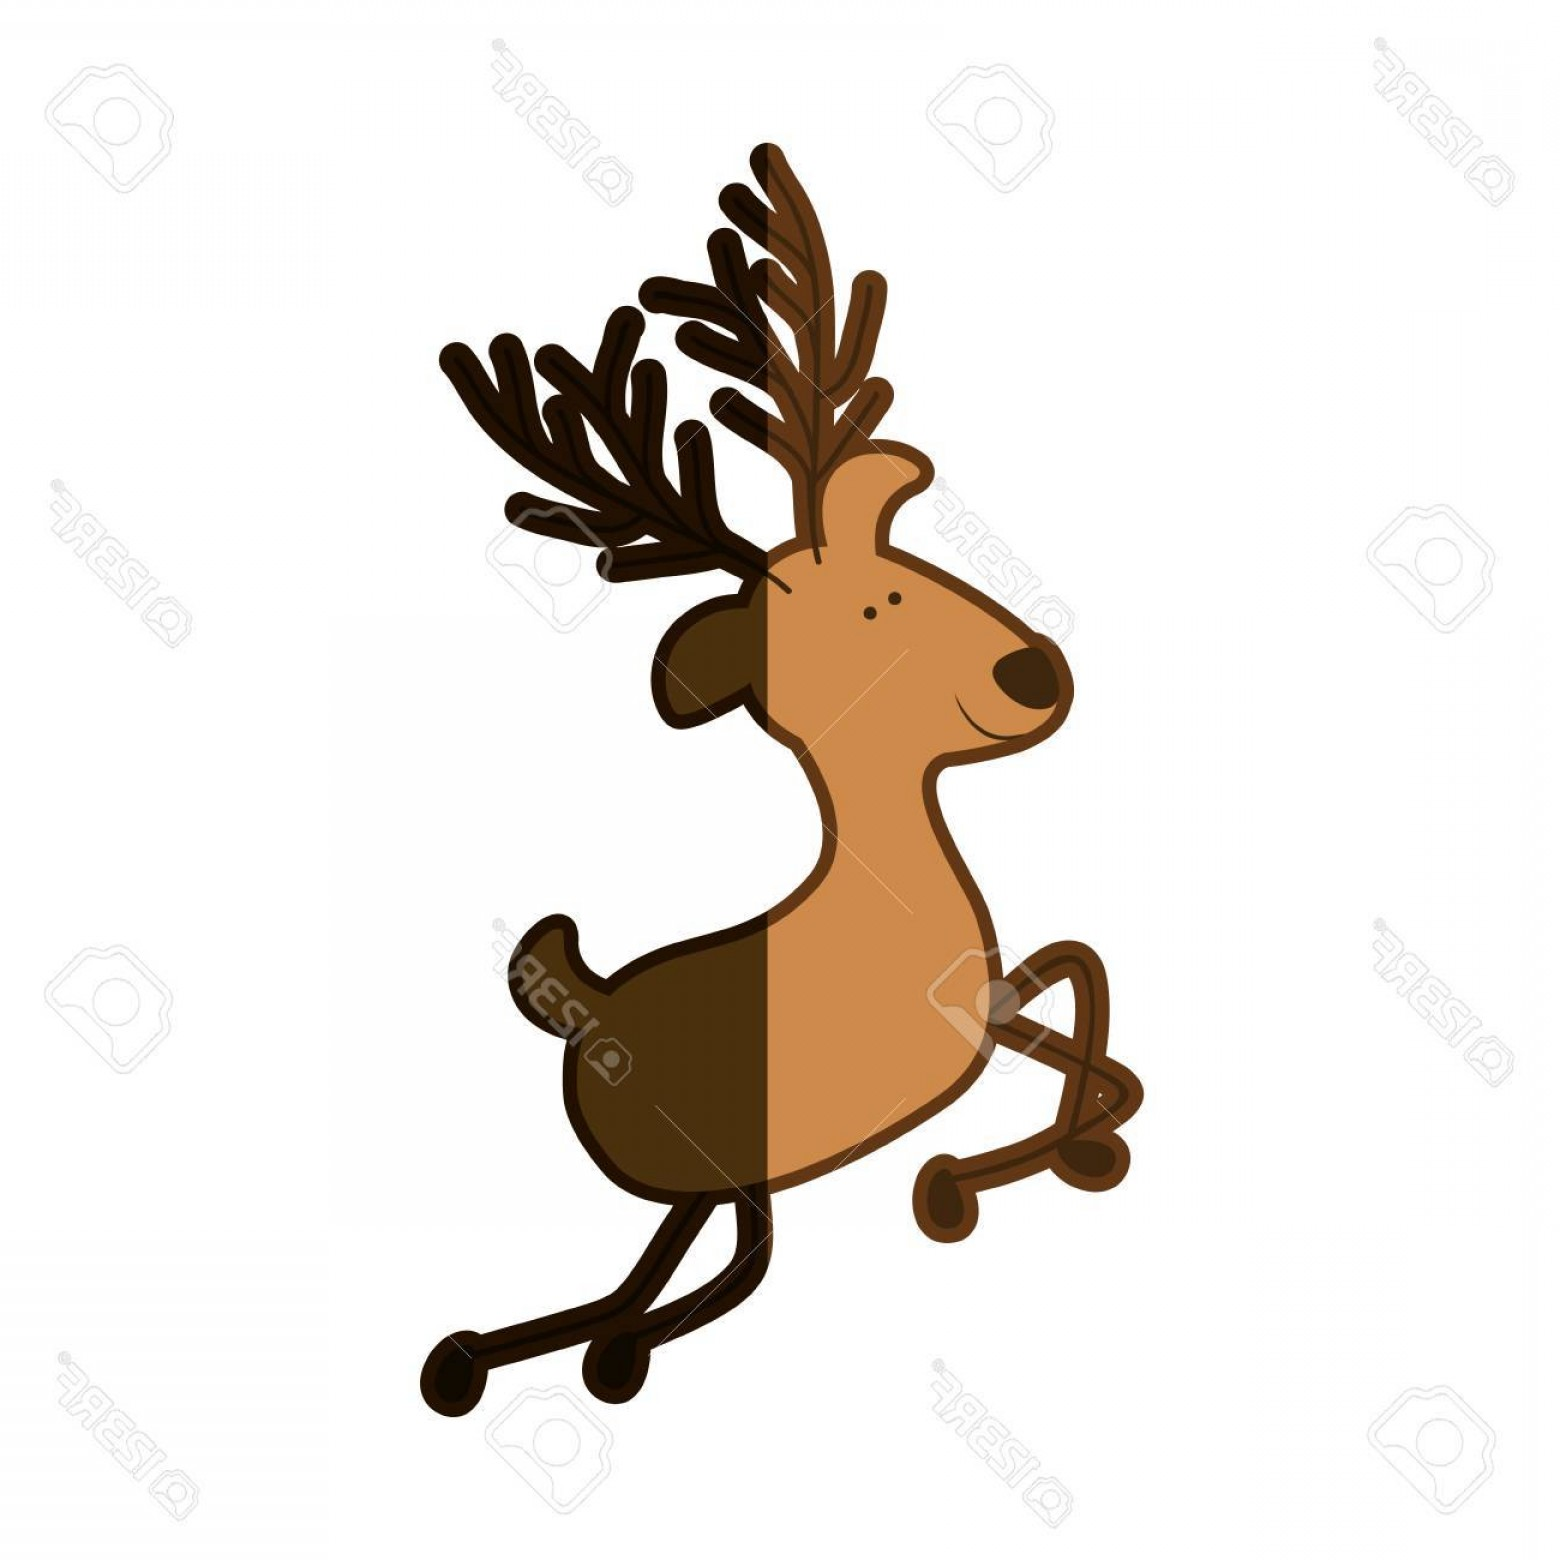 1560x1560 Photostock Vector Silhouette Caricature Color Of Reindeer Jumping